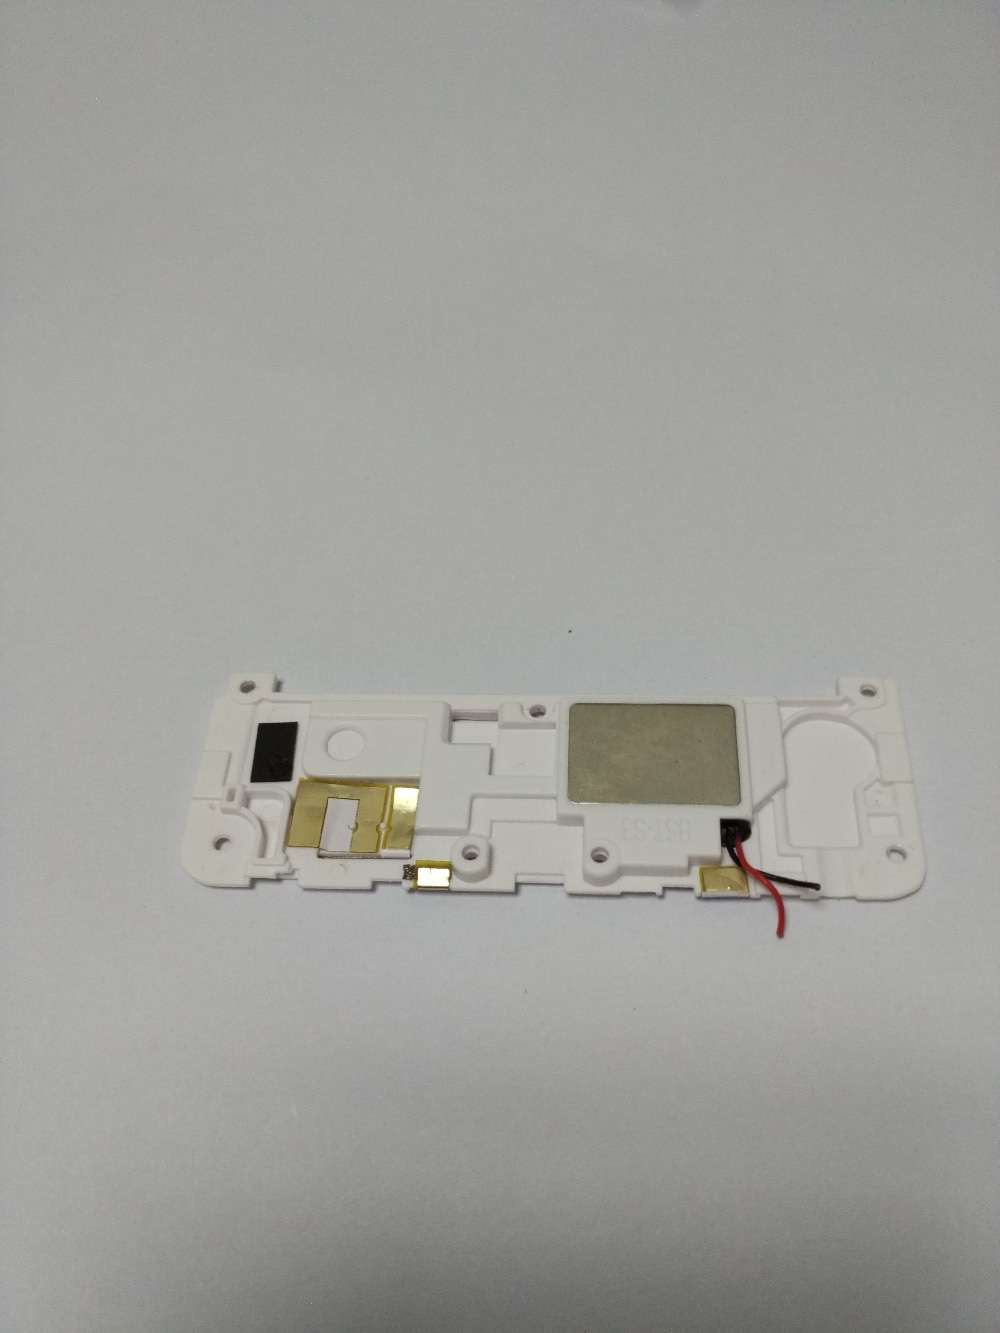 Used Loud Speaker Buzzer Ringer for UMI Fair 4G LTE MT6735 Quad Core 5.0